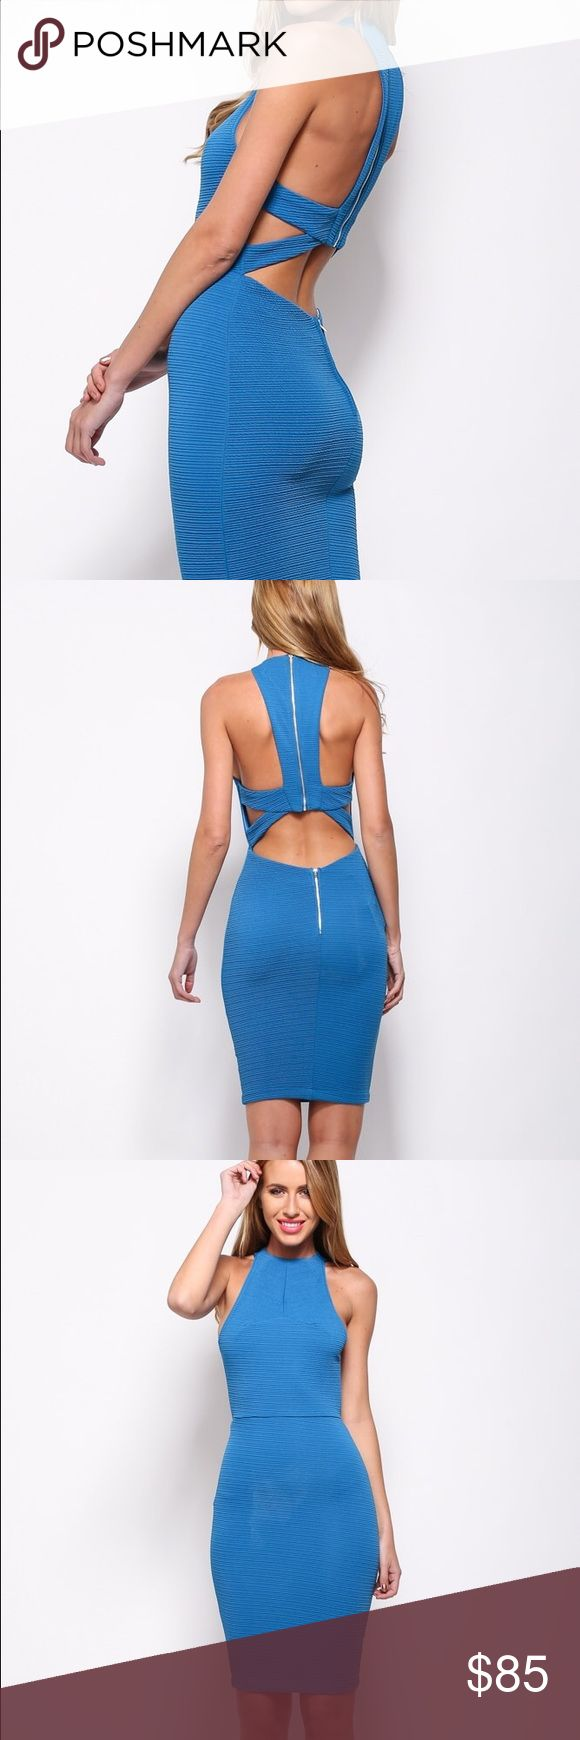 Untouchable dress Cut out dress. High round neckline. Cut outs at side. Visible back zip from neckline. Low cut out back. Low visible back zip. Ribbed fabric. Fitted style with stretch in fabric. Pencil skirt. Not lined. Hello molly Dresses Midi